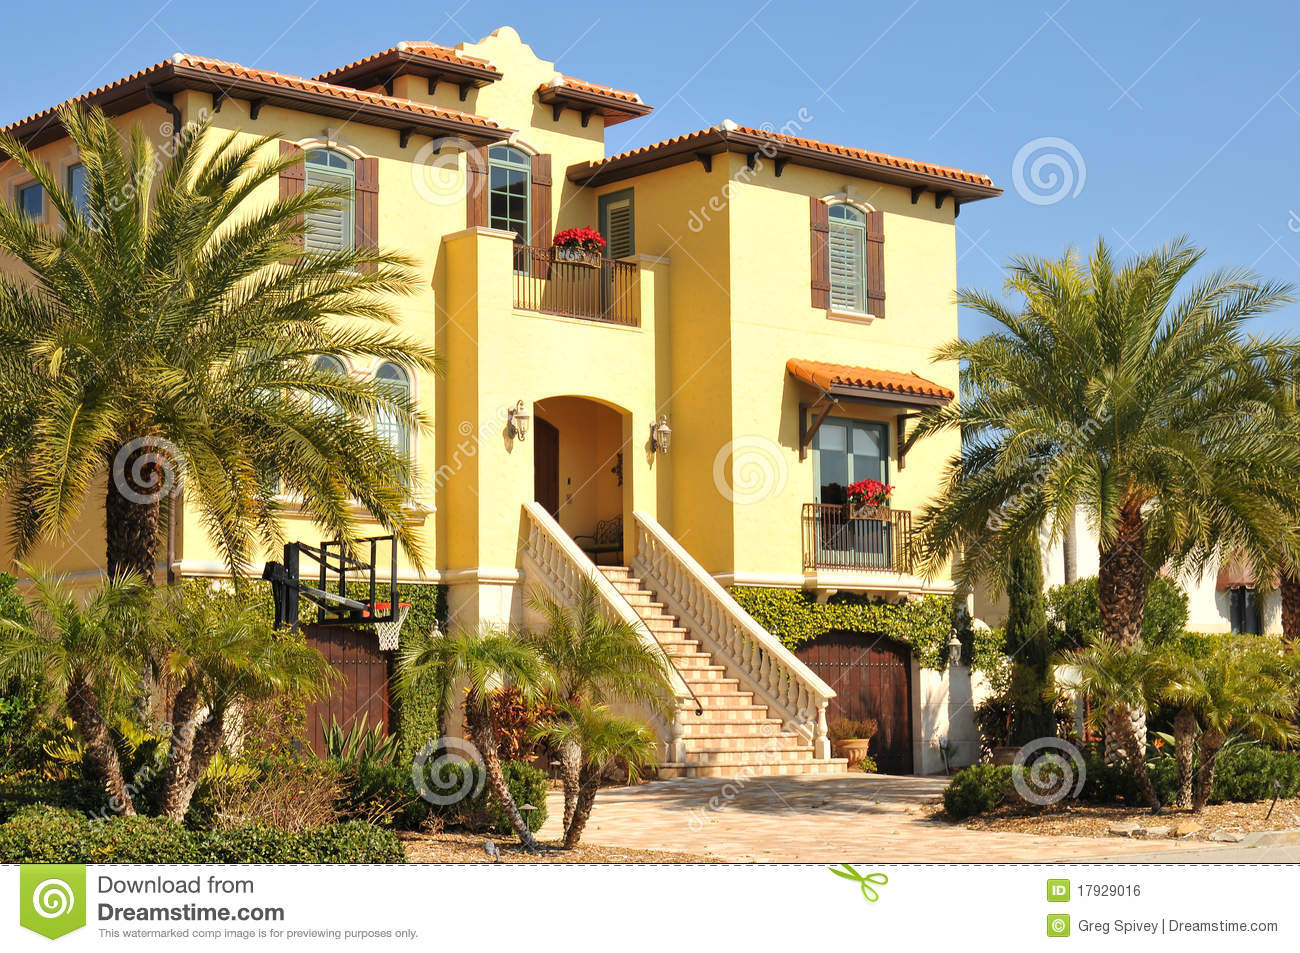 Beautiful three story spanish home in florida royalty free stock image imag - Plus belle maison de france ...